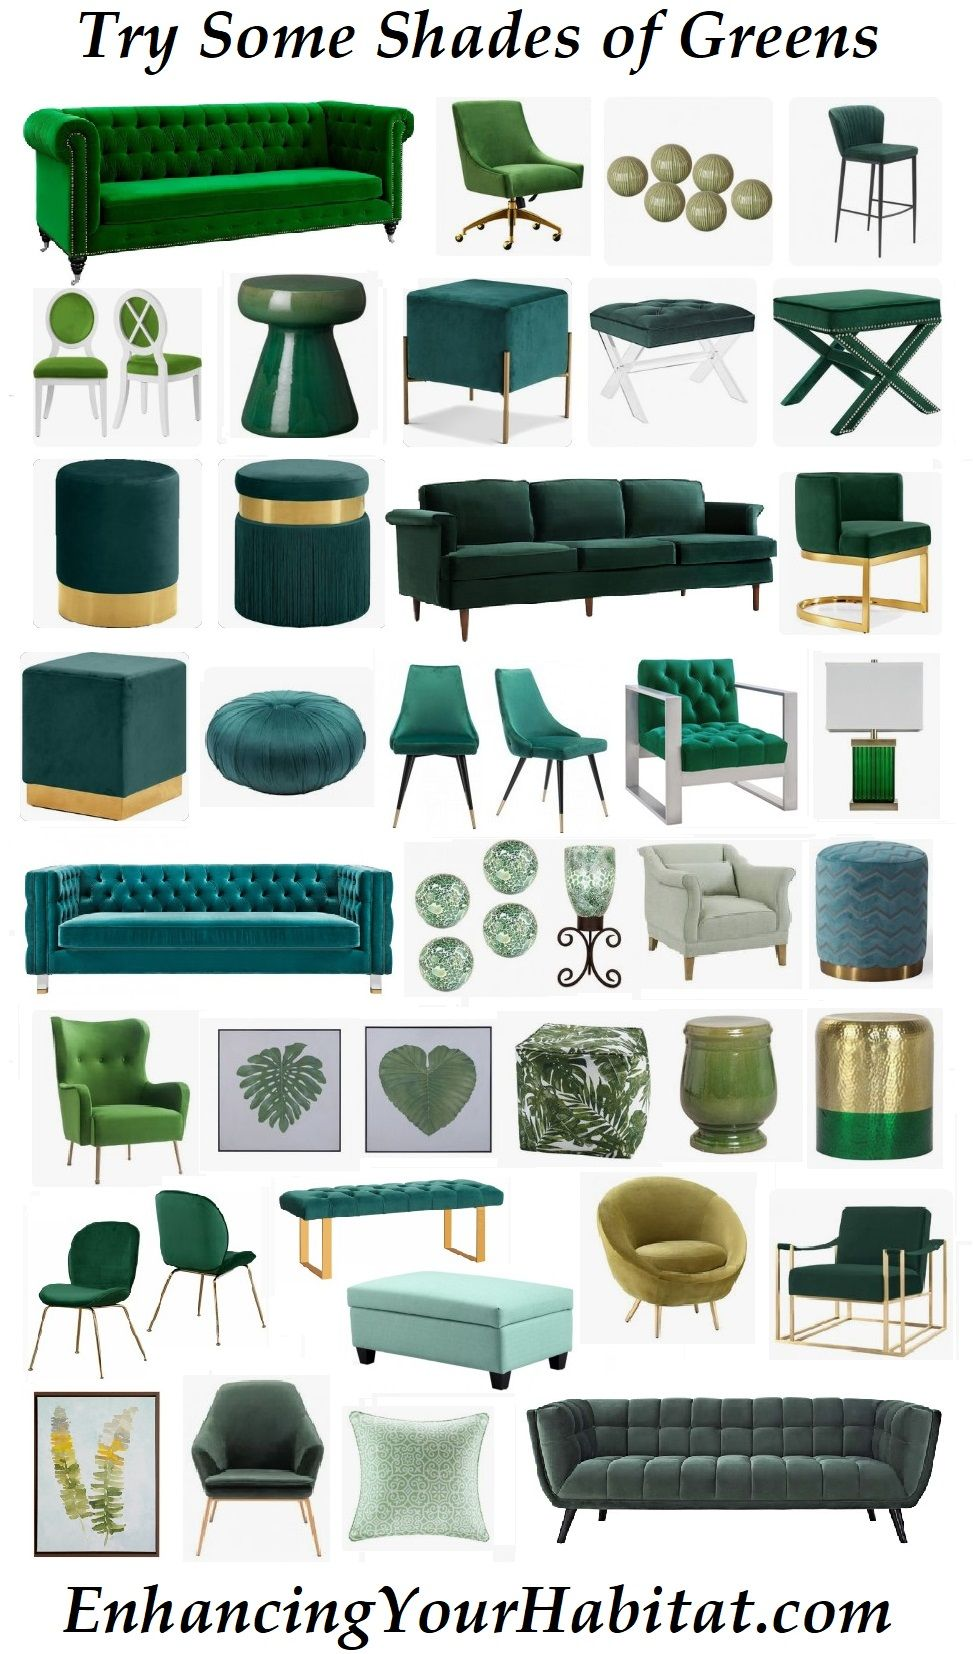 Green Furniture Home Accessories Green Sofa Green Velvet Green